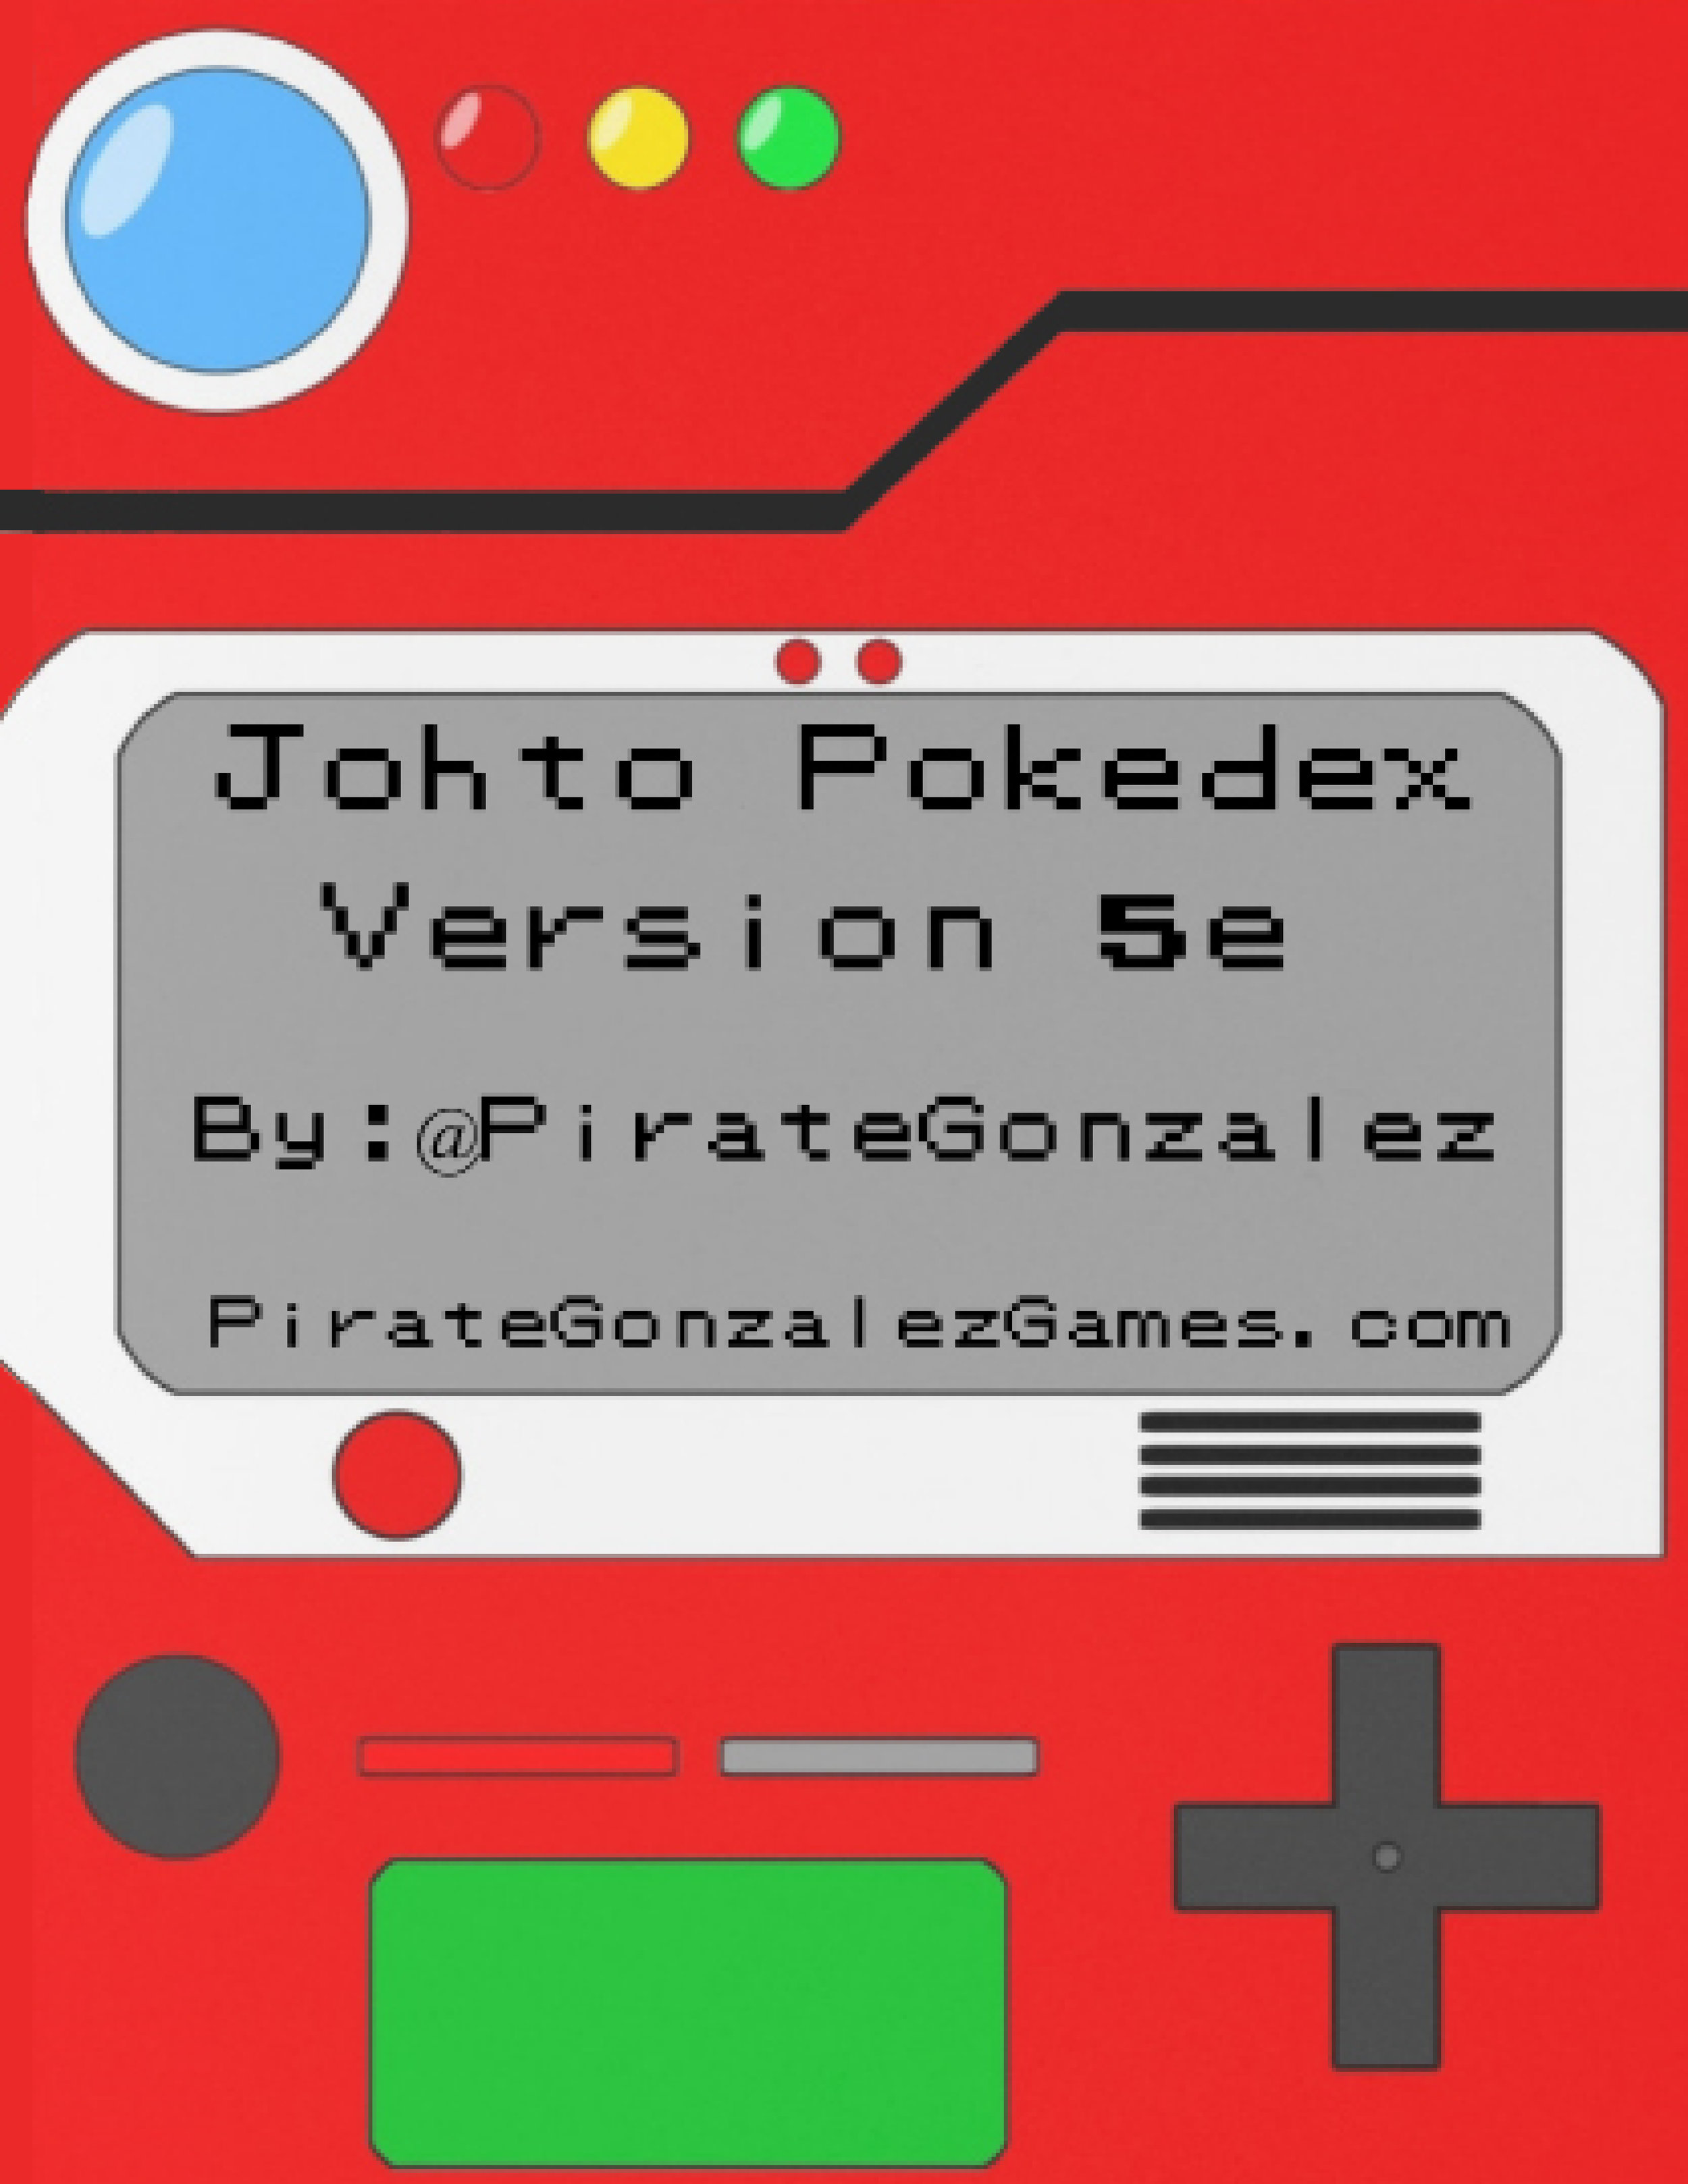 Pokemon Johto Pokedex 5e.jpg